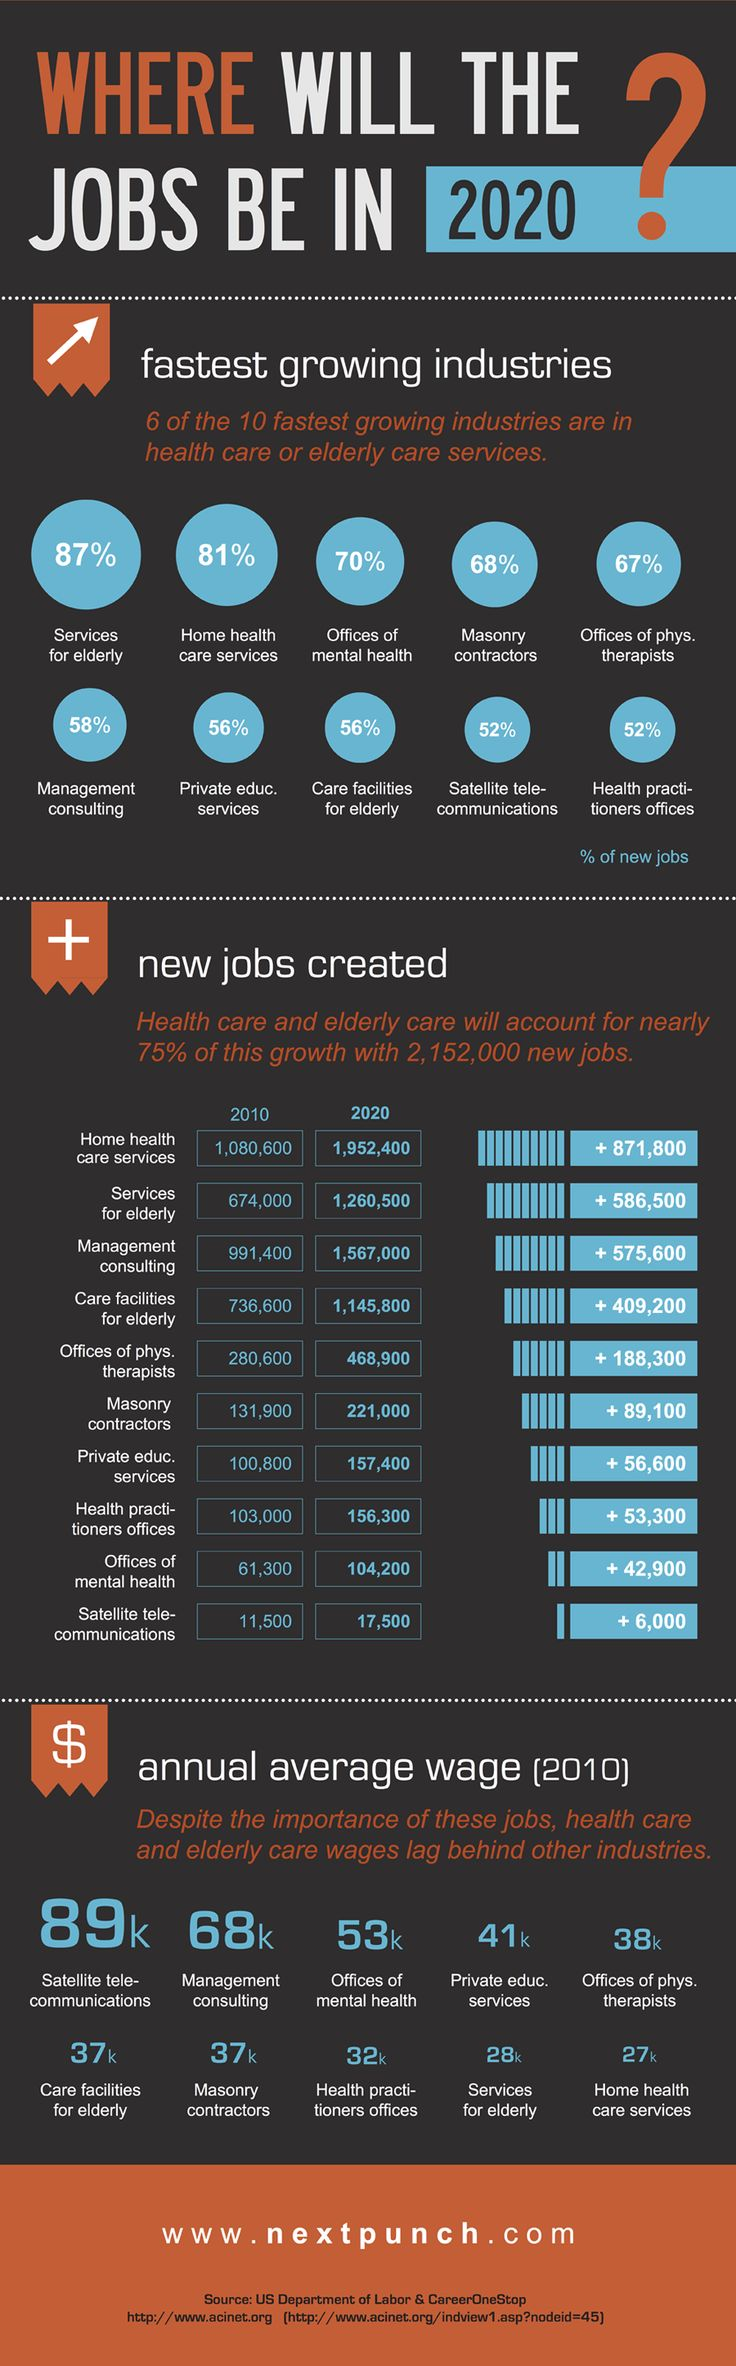 Where Will the Jobs be in 2020